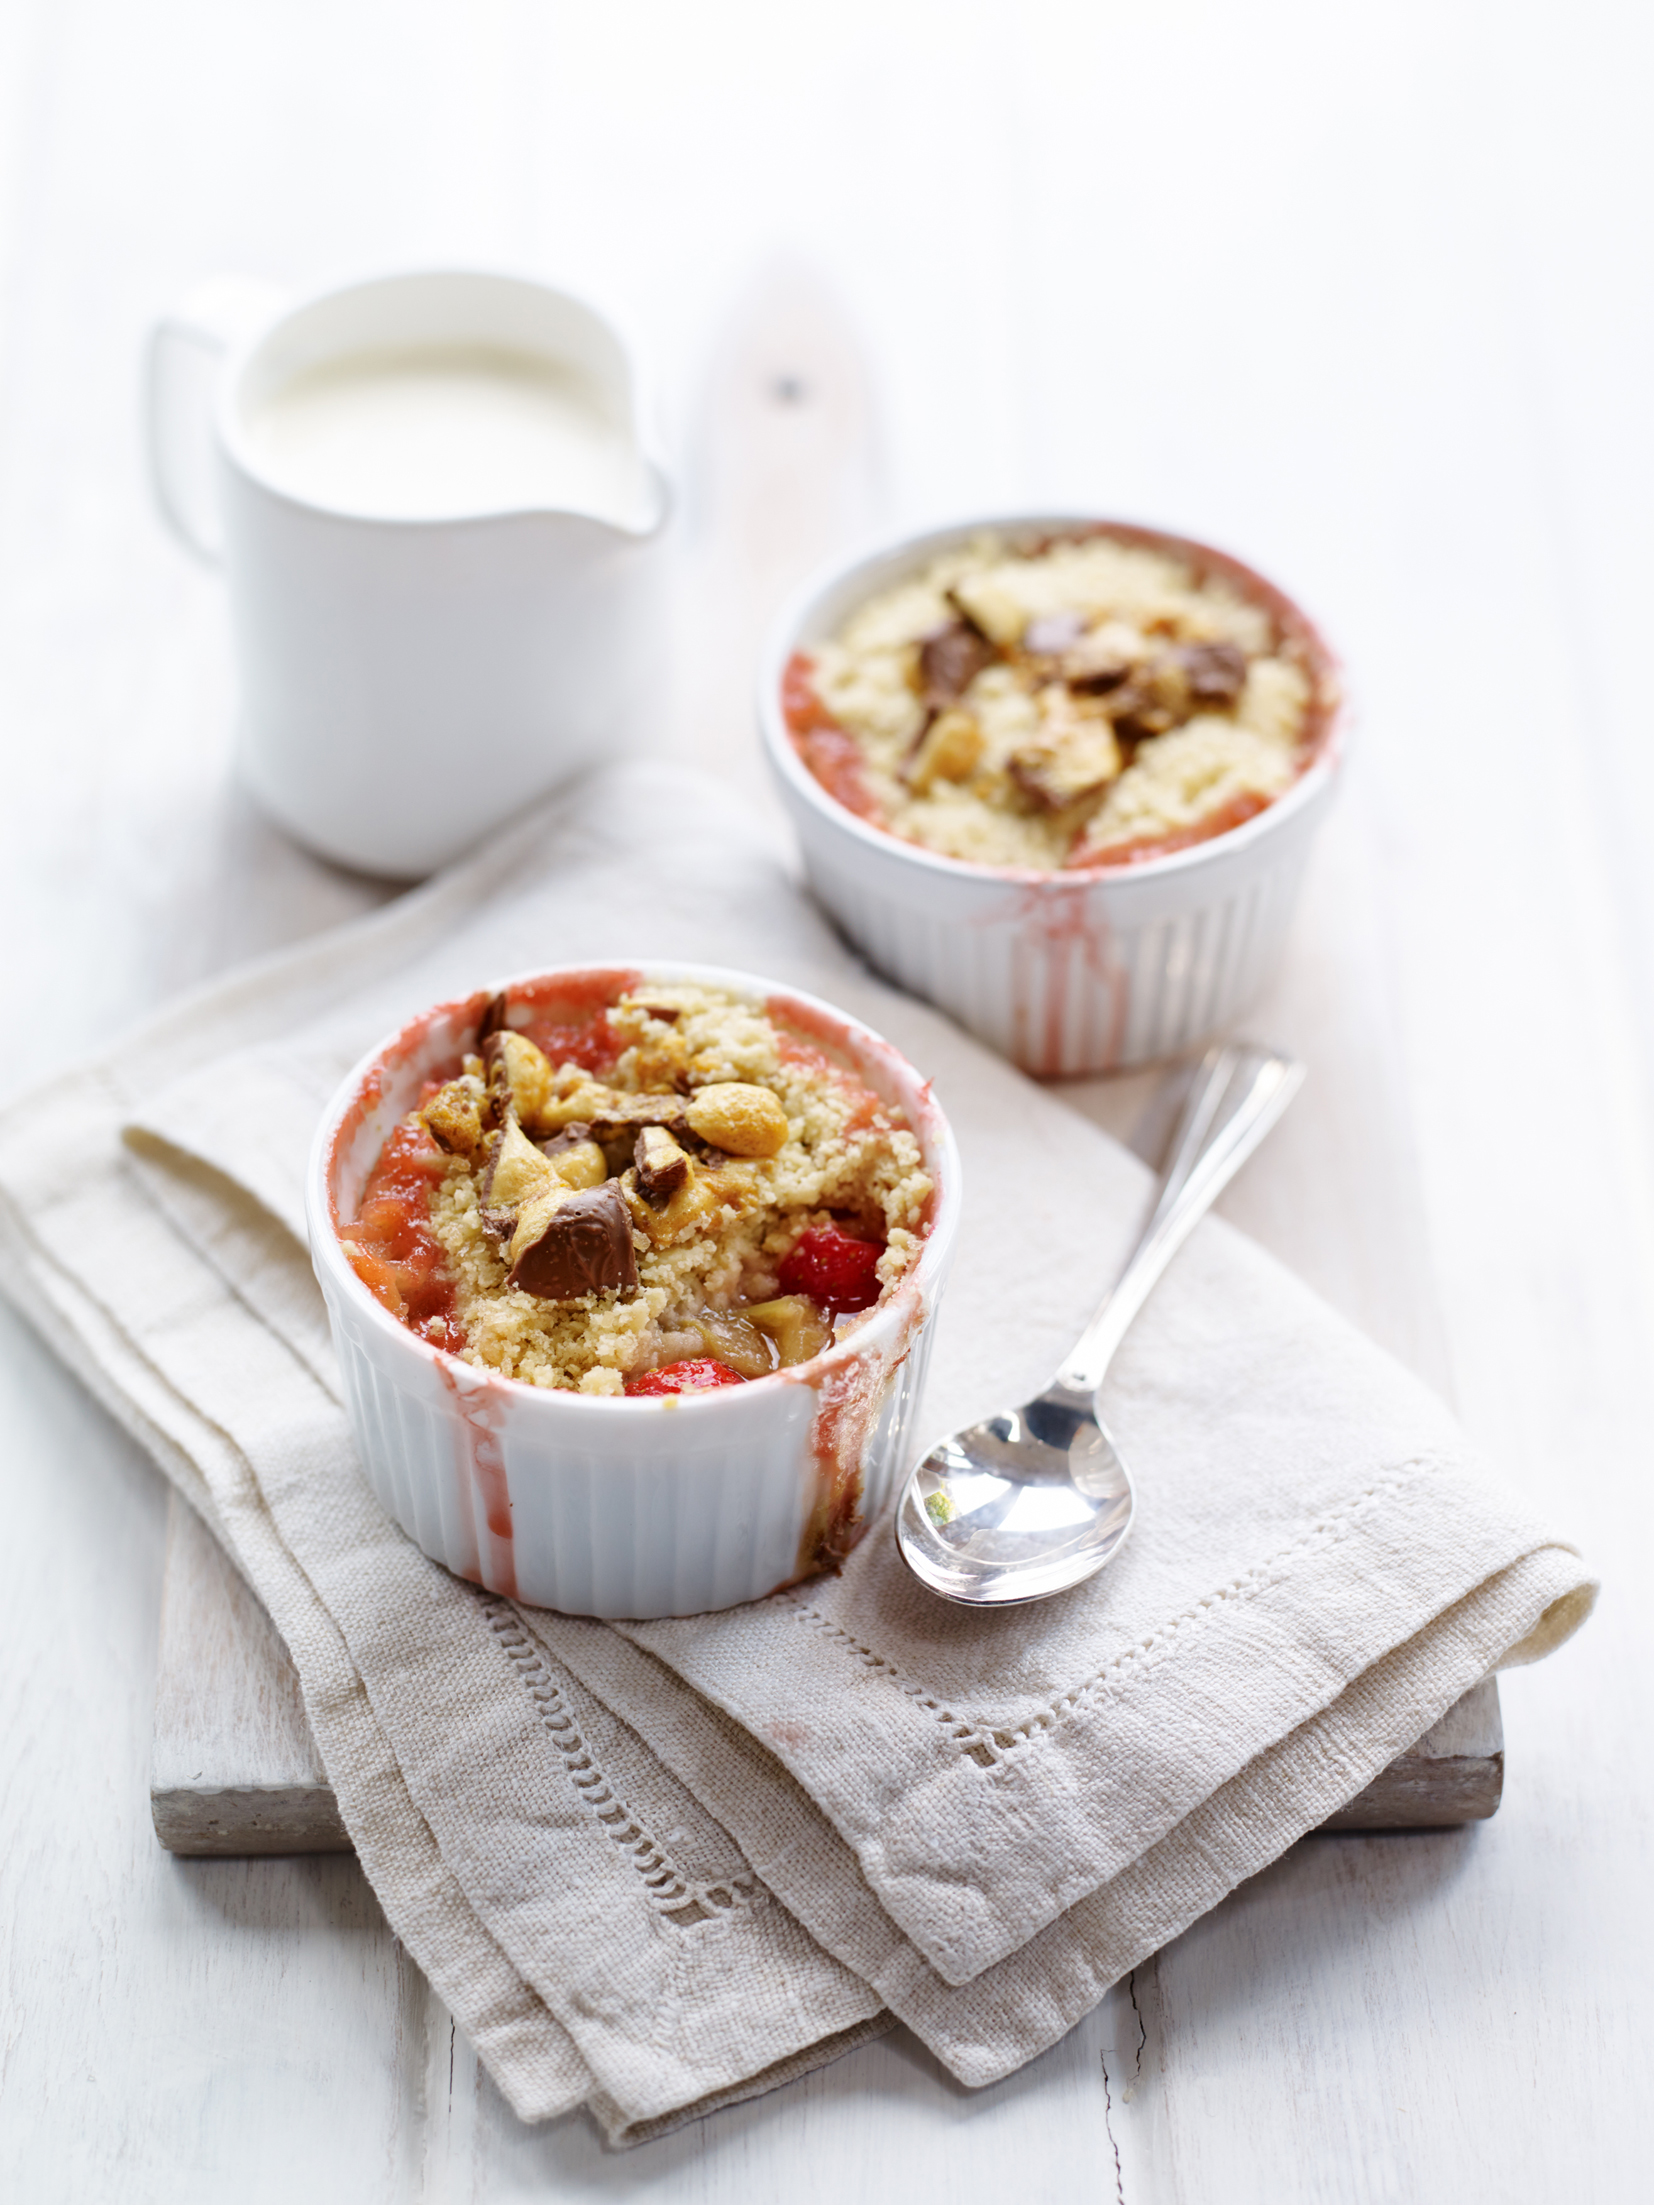 BerryWorld Strawberry and Rhubarb Crumble - Roughly chopped fruit with a dash of ginger wine and a crunchy bar crumble topping! This pudd is a great way to warm up on a chilly night.